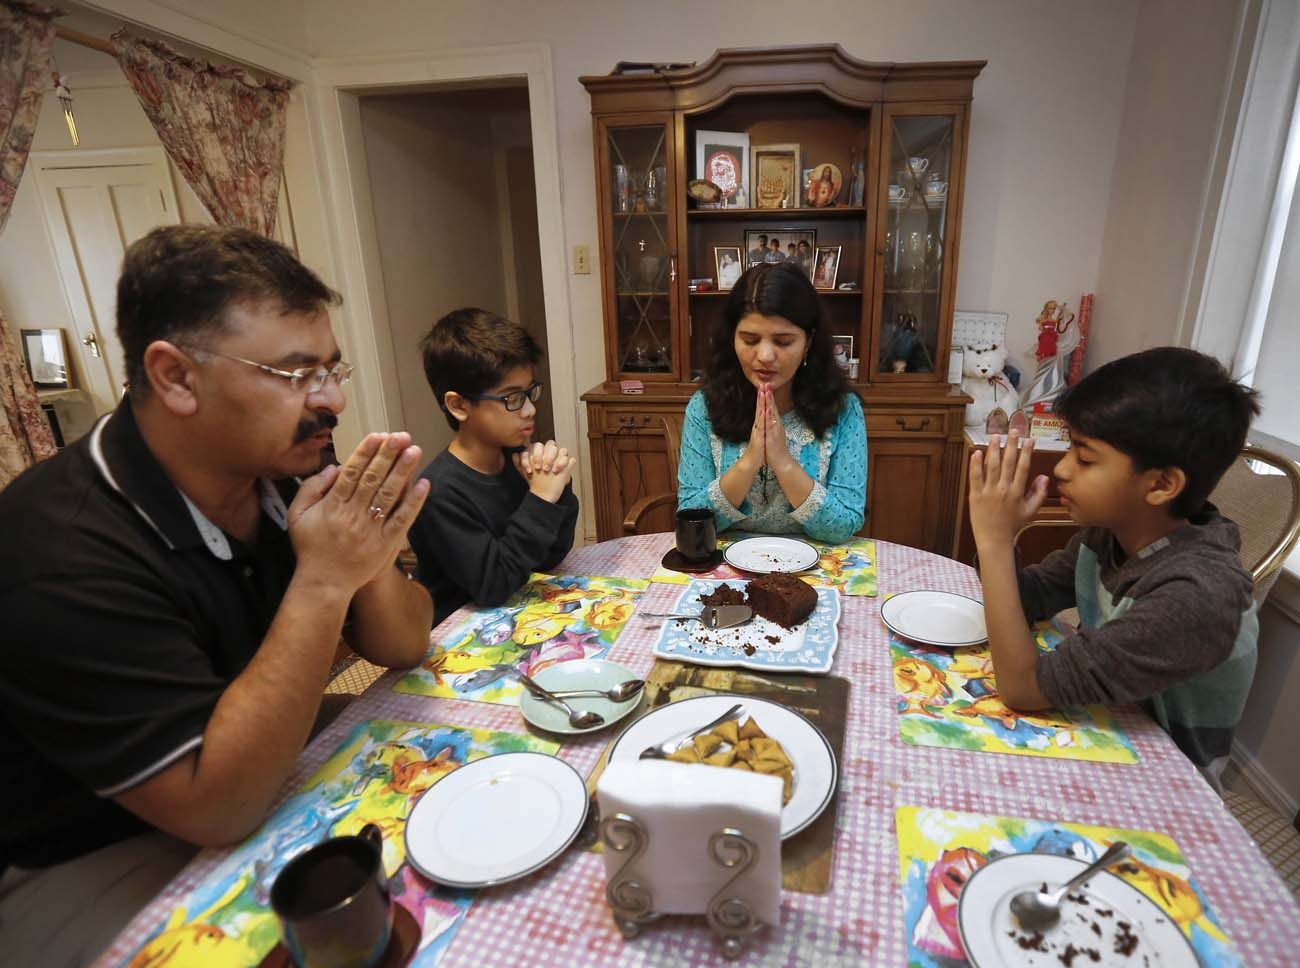 Members of the Sharif family share tea at their home in Chicago Feb. 4. They made their way to the United States from Pakistan 20 months ago after being targeted and threatened by a Muslim extremist group. (CNS photo/Karen Callaway, Chicago Catholic)